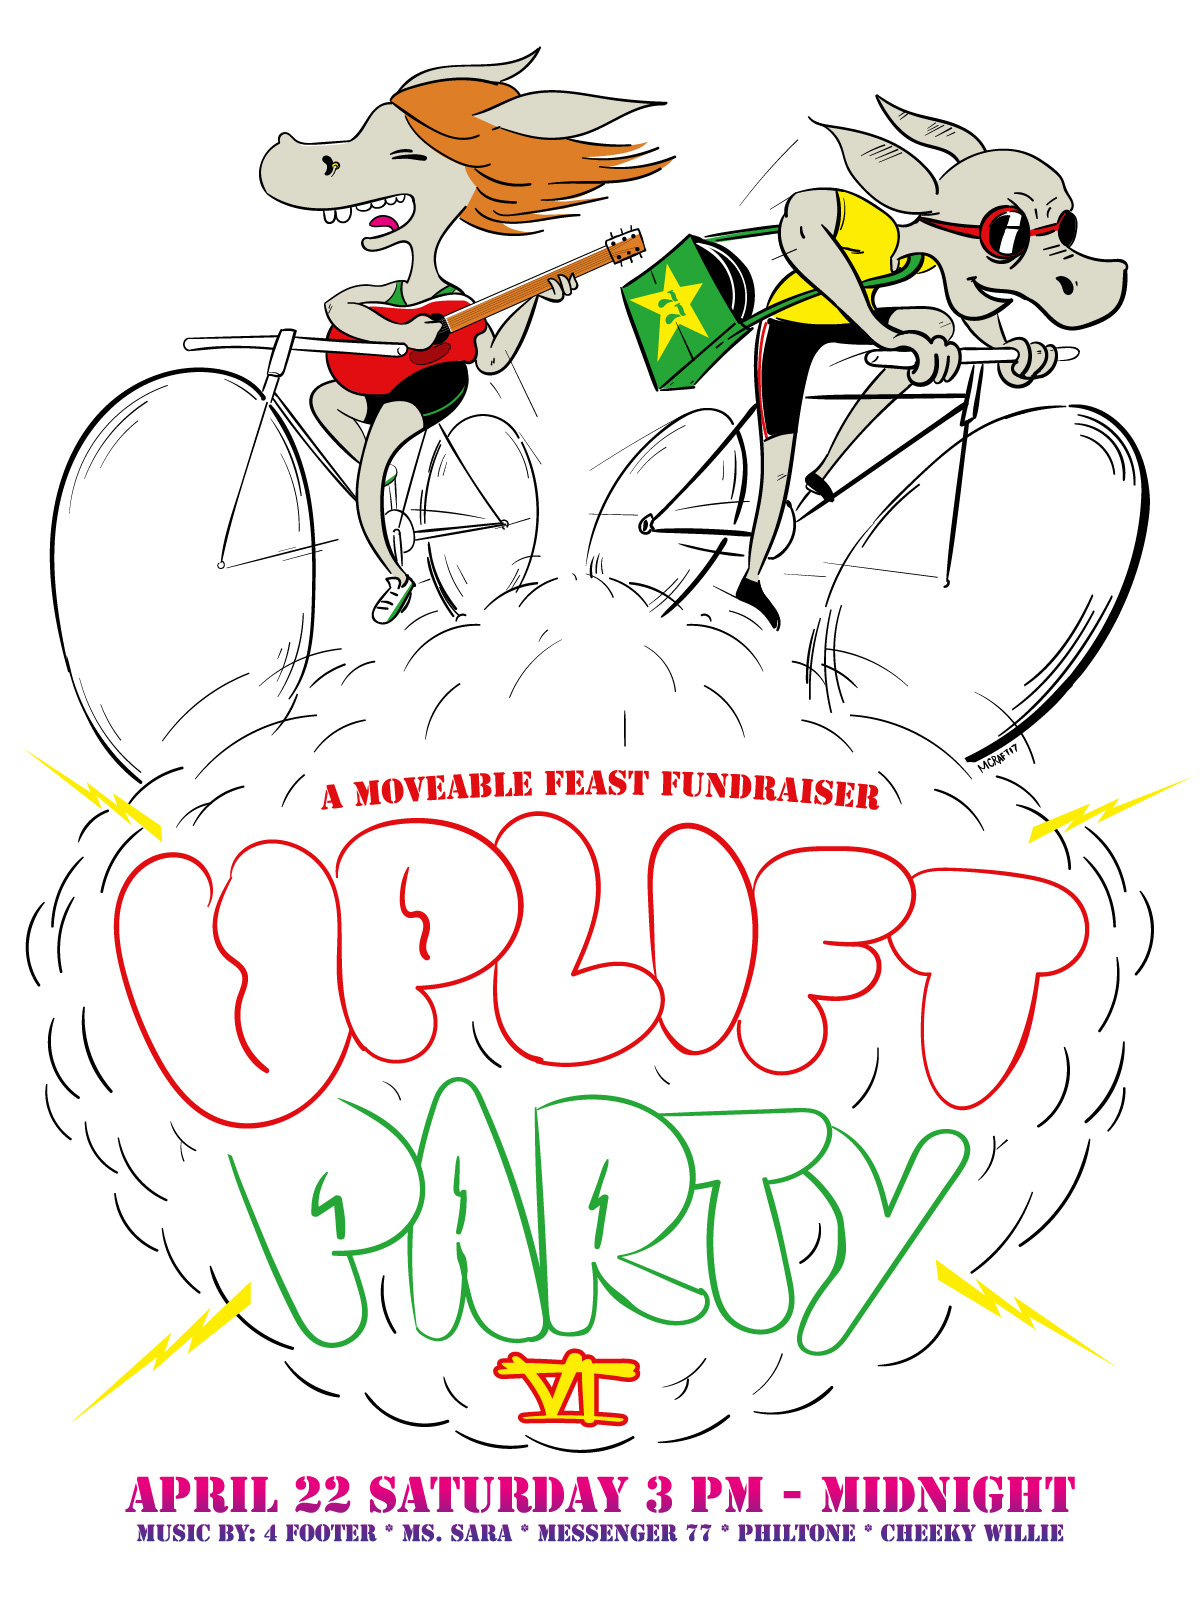 bike-messenger-uplift-party-illustration-02